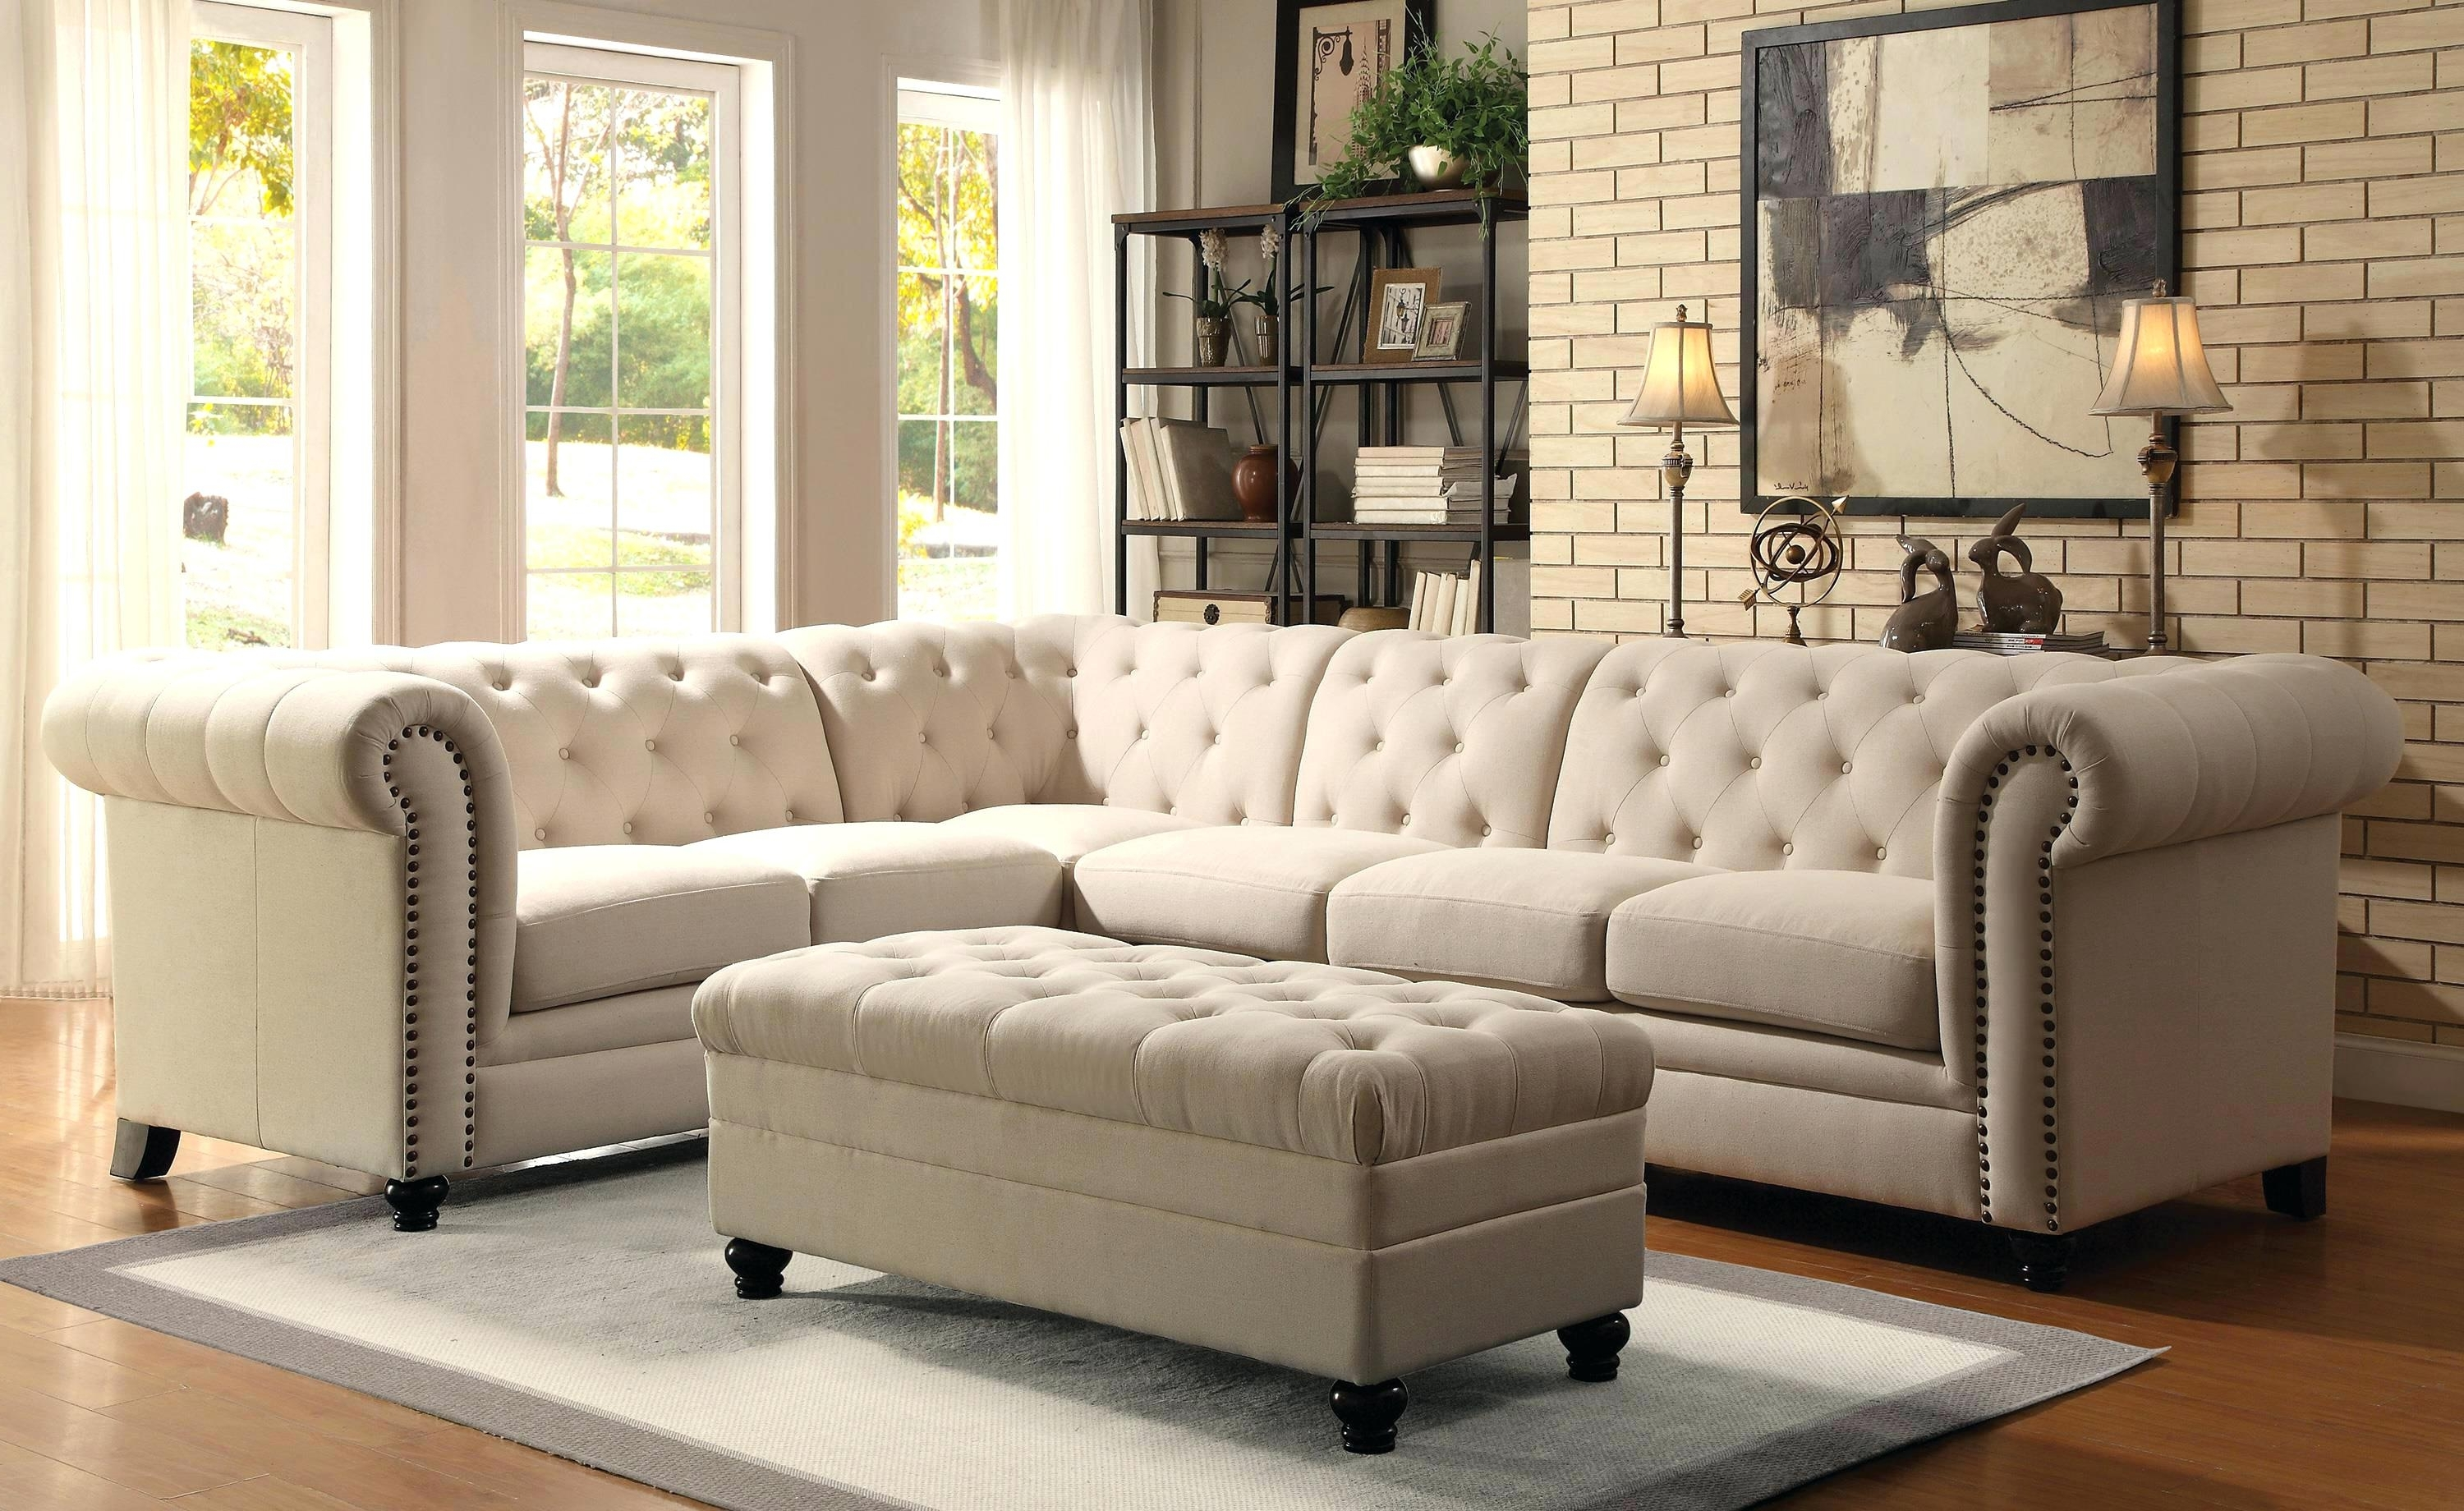 L Sectional Sofa Shad Sectiona 1810282 Slipcovers Walmart Covers With 2018 London Ontario Sectional Sofas (View 12 of 15)